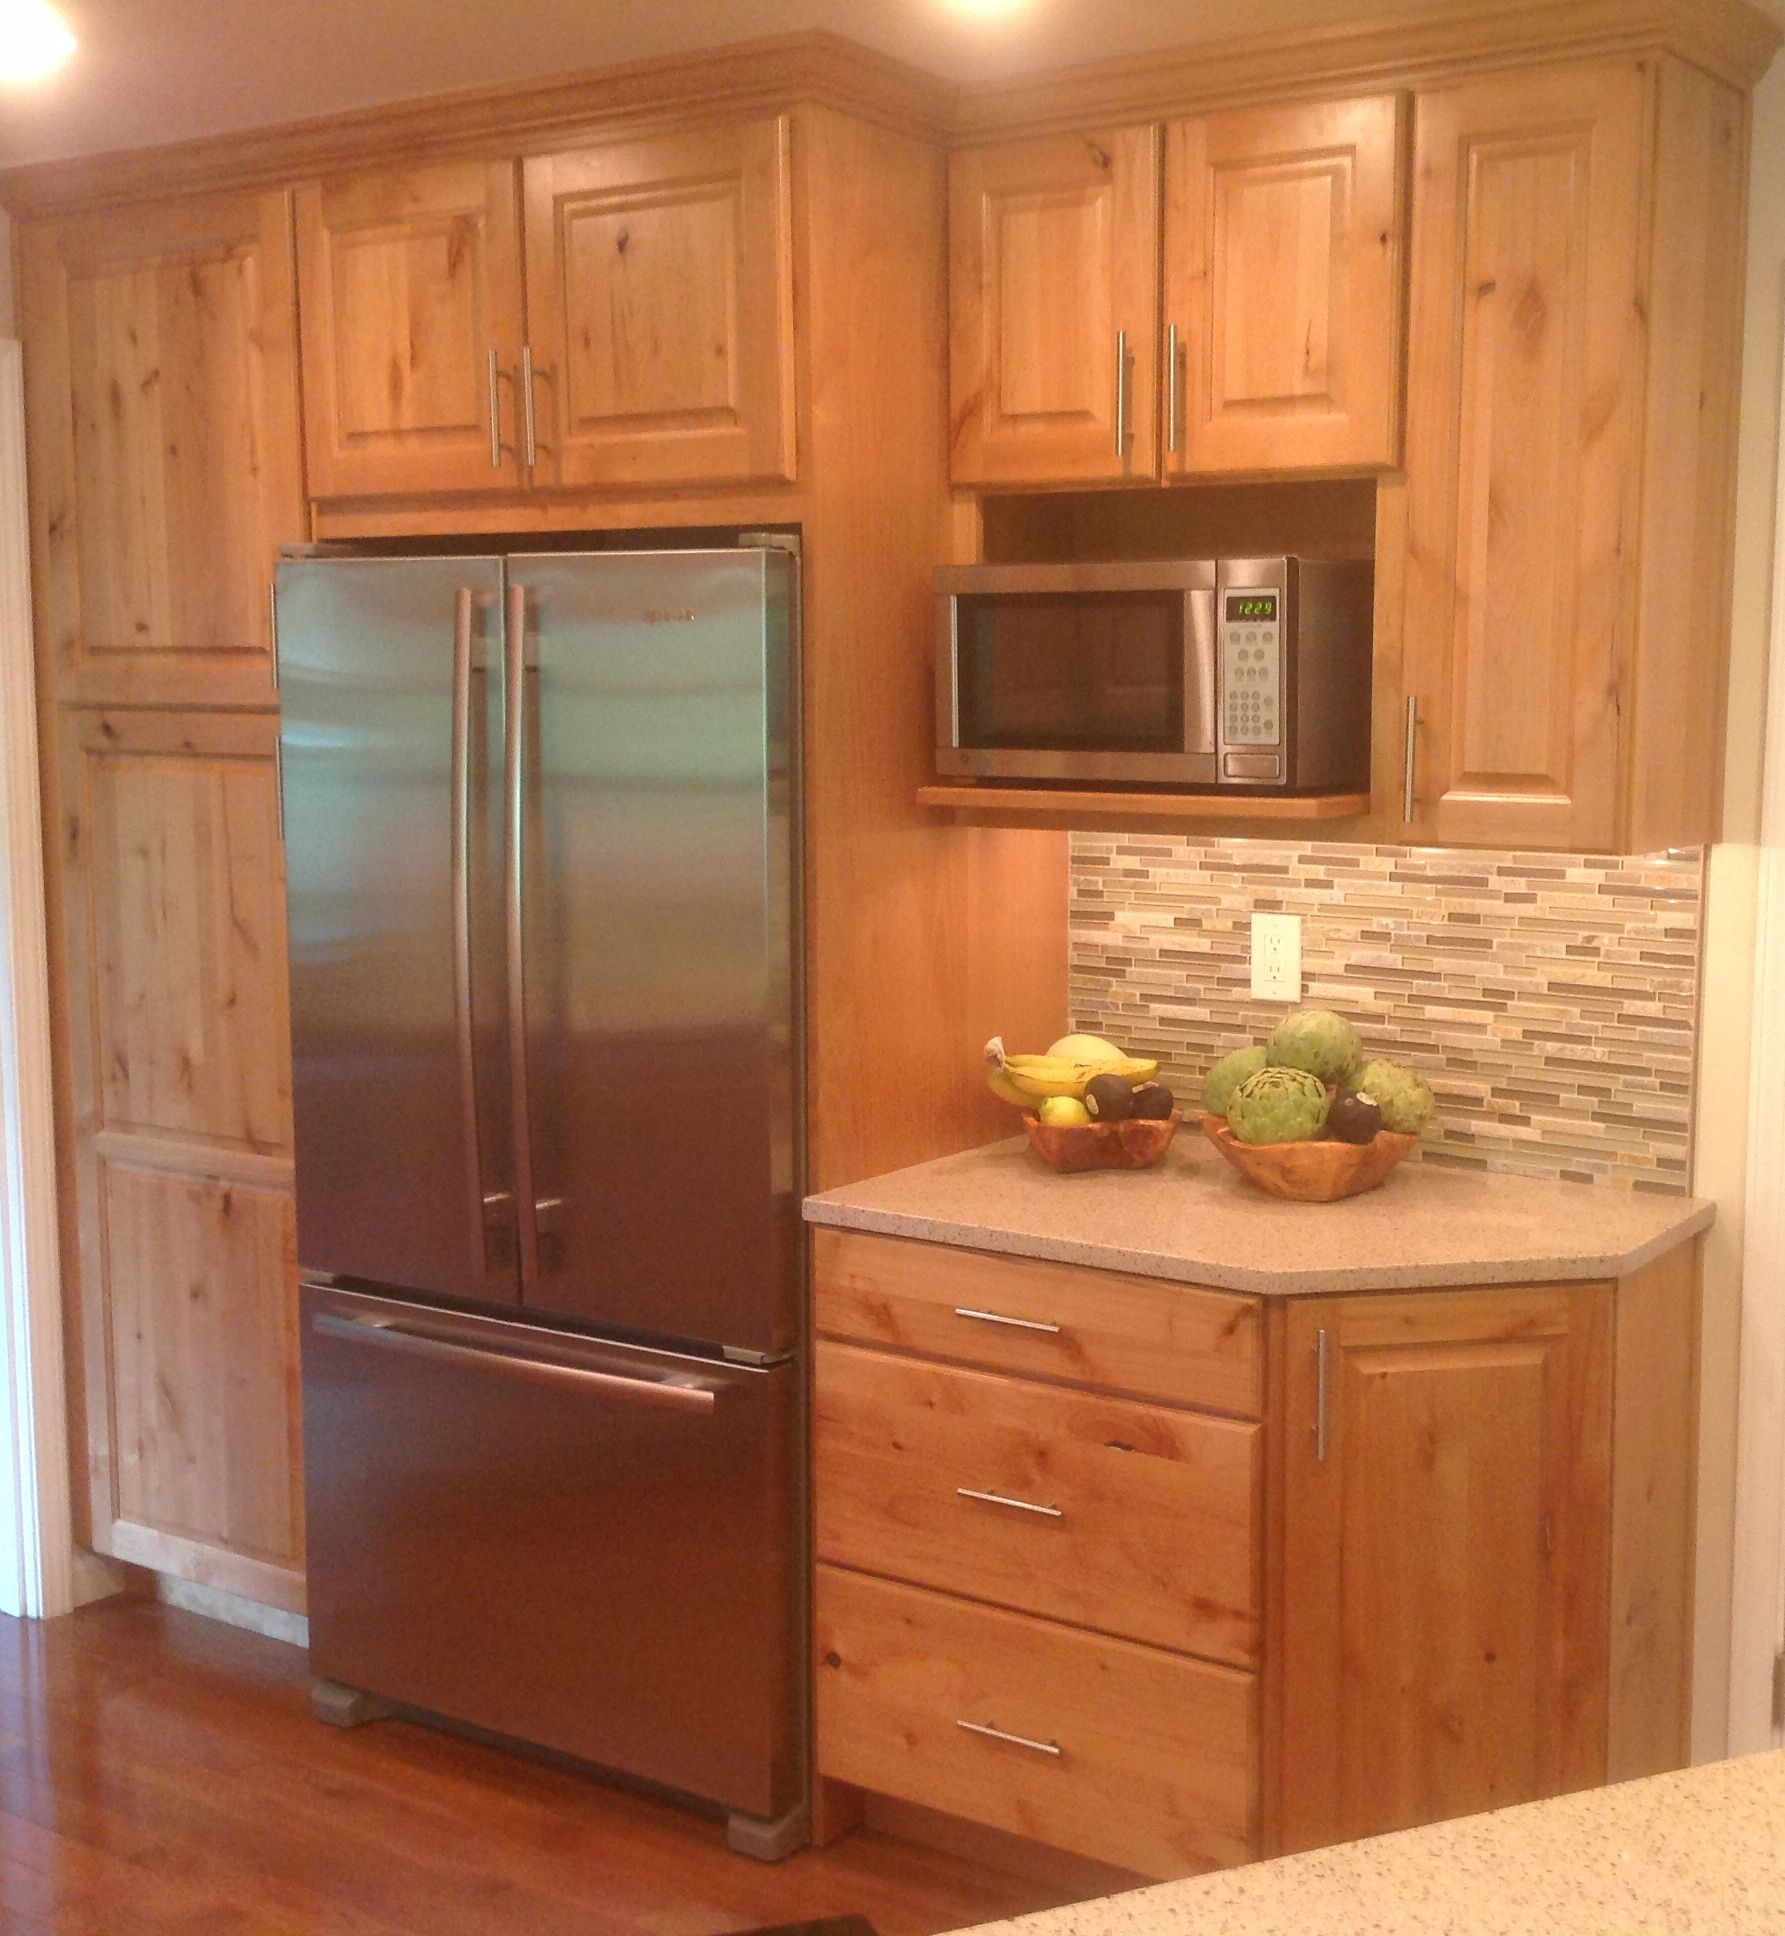 Pin By Legacy Remodeling On Legacy Looks Rustic Kitchen Design Rustic Kitchen Cabinets Wooden Kitchen Cabinets